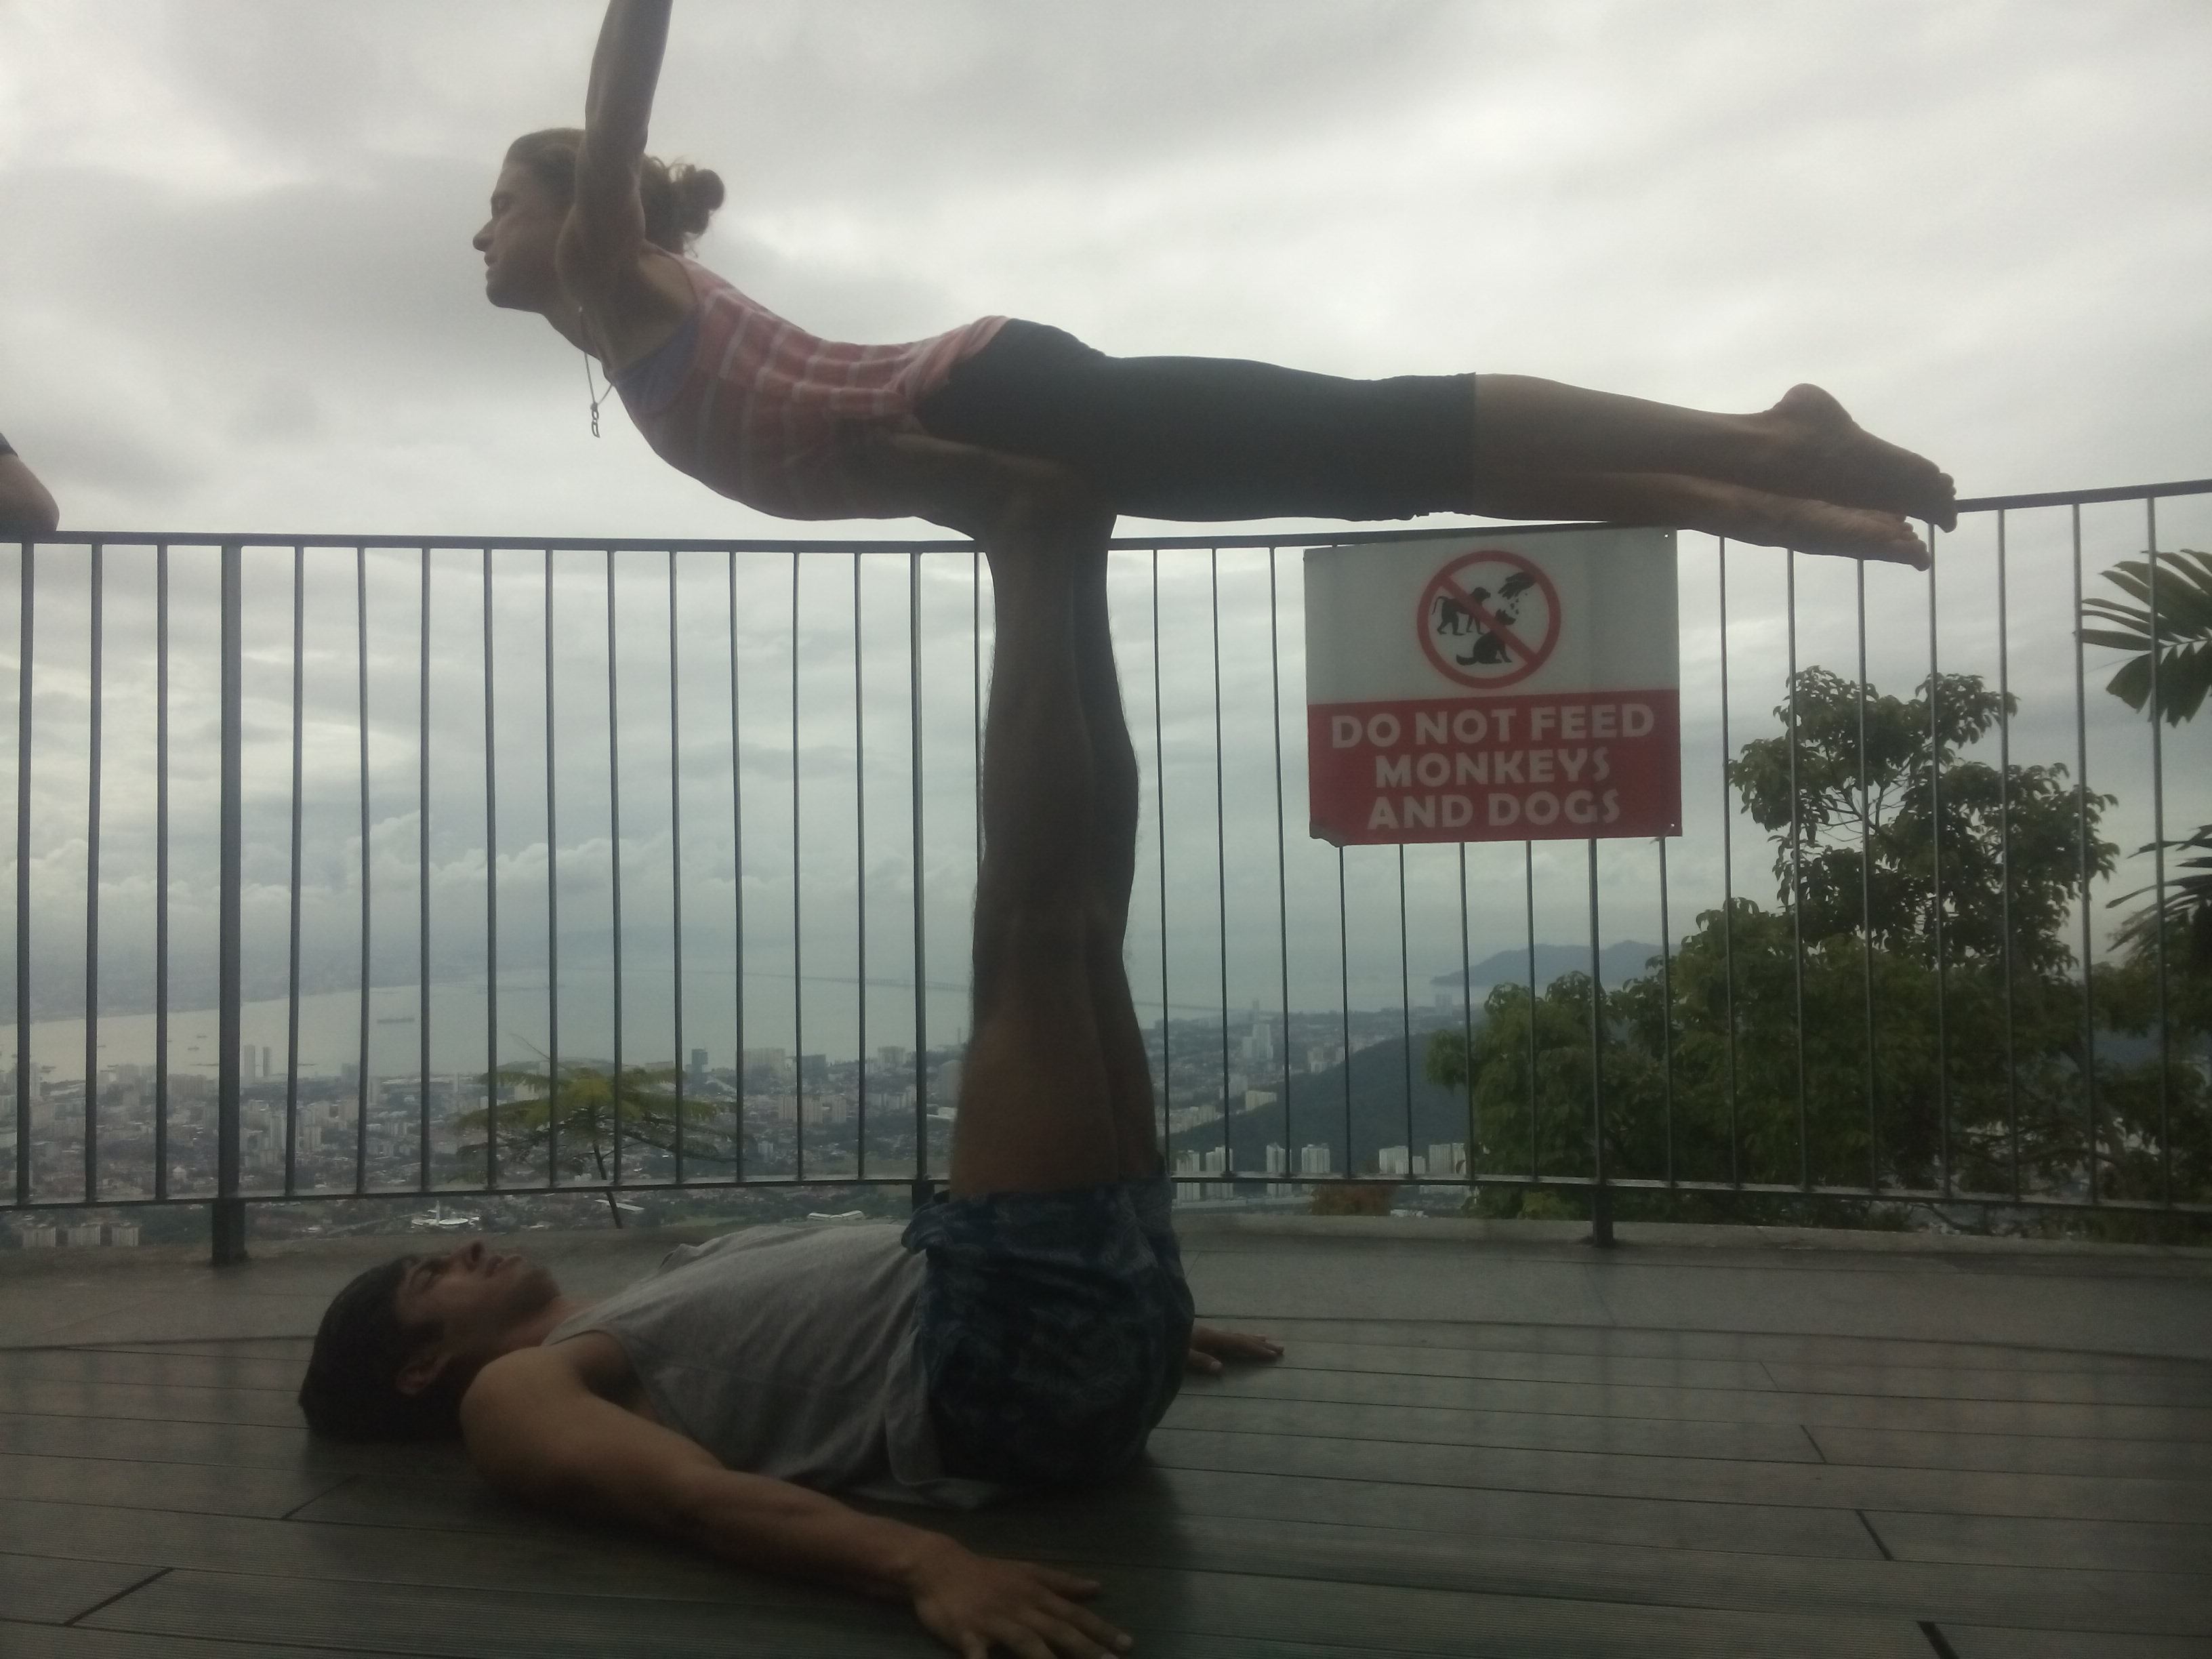 Two people doing acro yoga